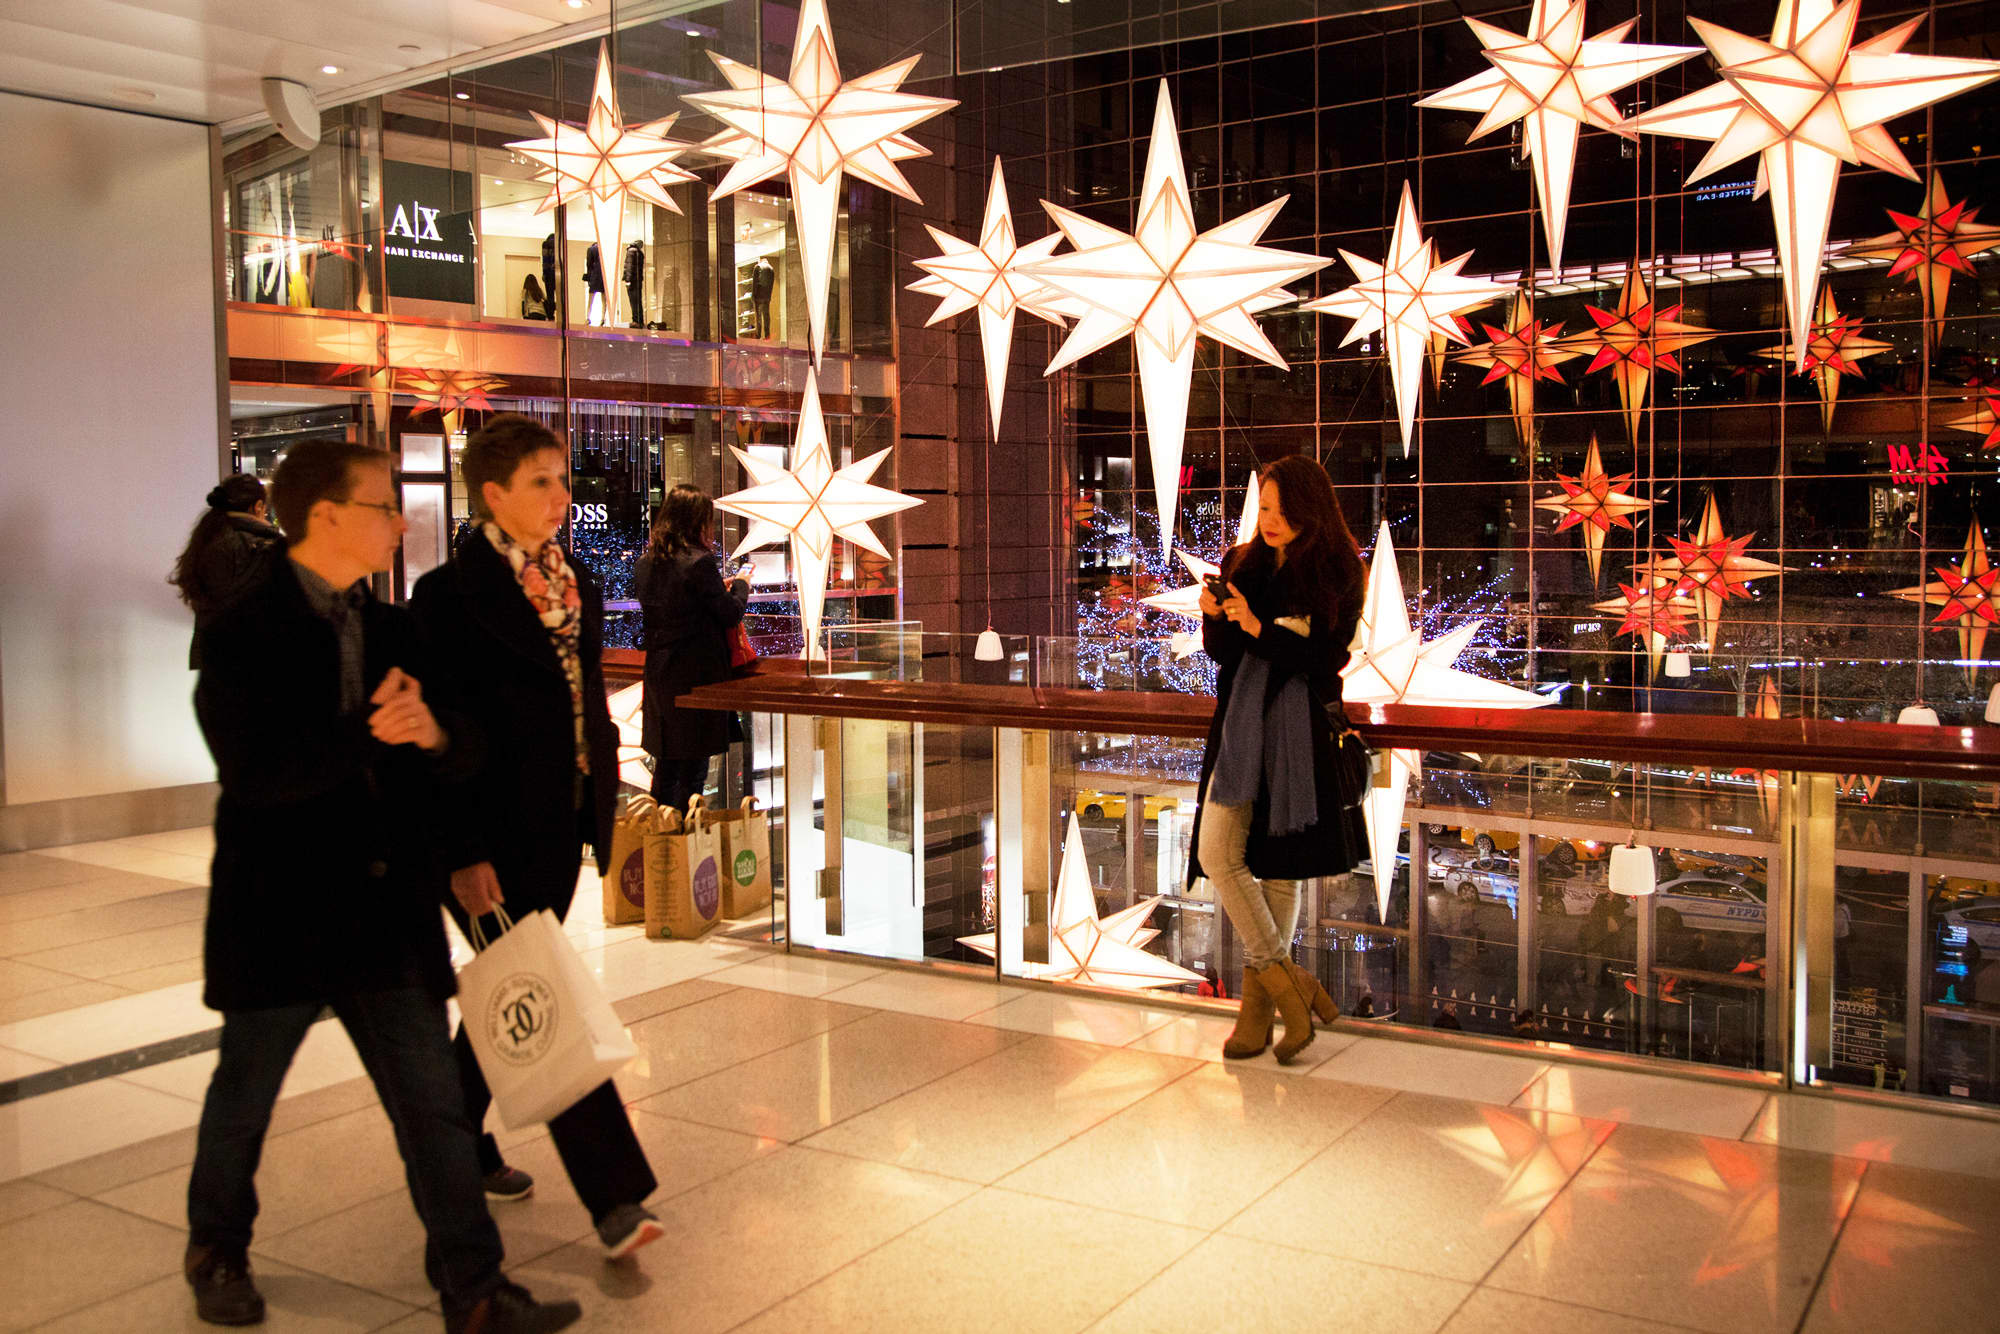 This is one retailer trick you don't want to fall for this holiday season